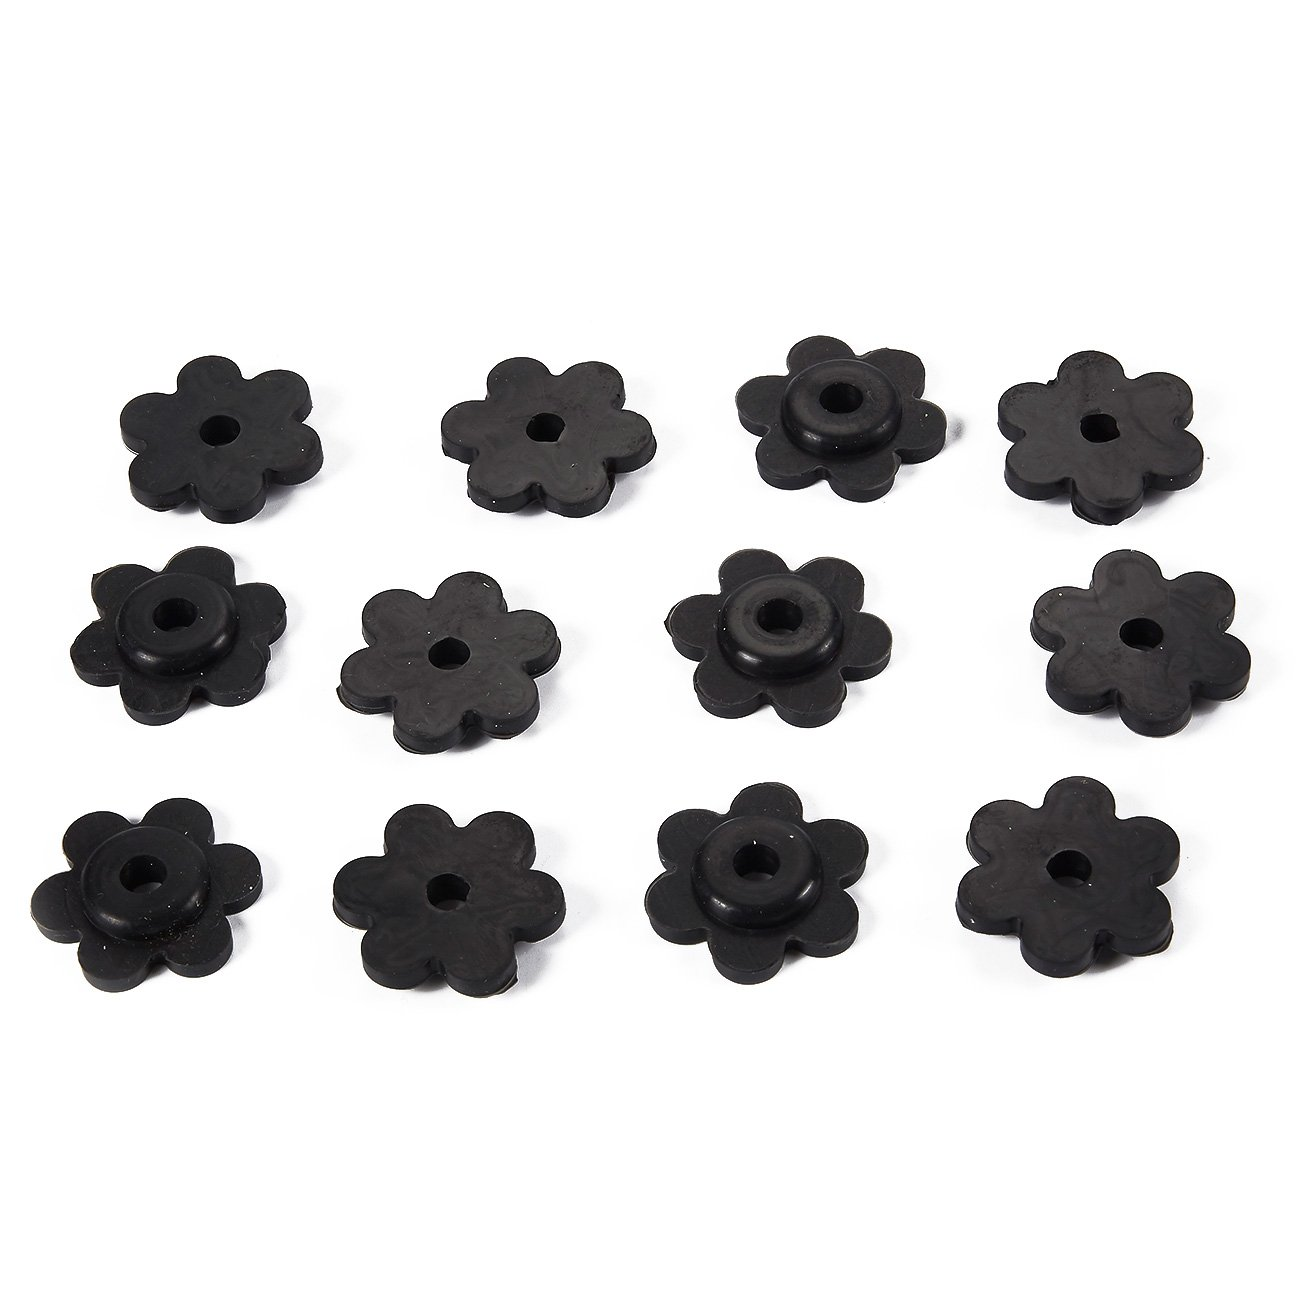 Juvale Garden Flag Pole Rubber Stopper - 12-Pack Petal Shaped Garden Flag Stoppers, Rubber Stopper Set Ideal for Home, Patio and Garden Decorations, Black, 1.25 x 1 x 0.5 Inches